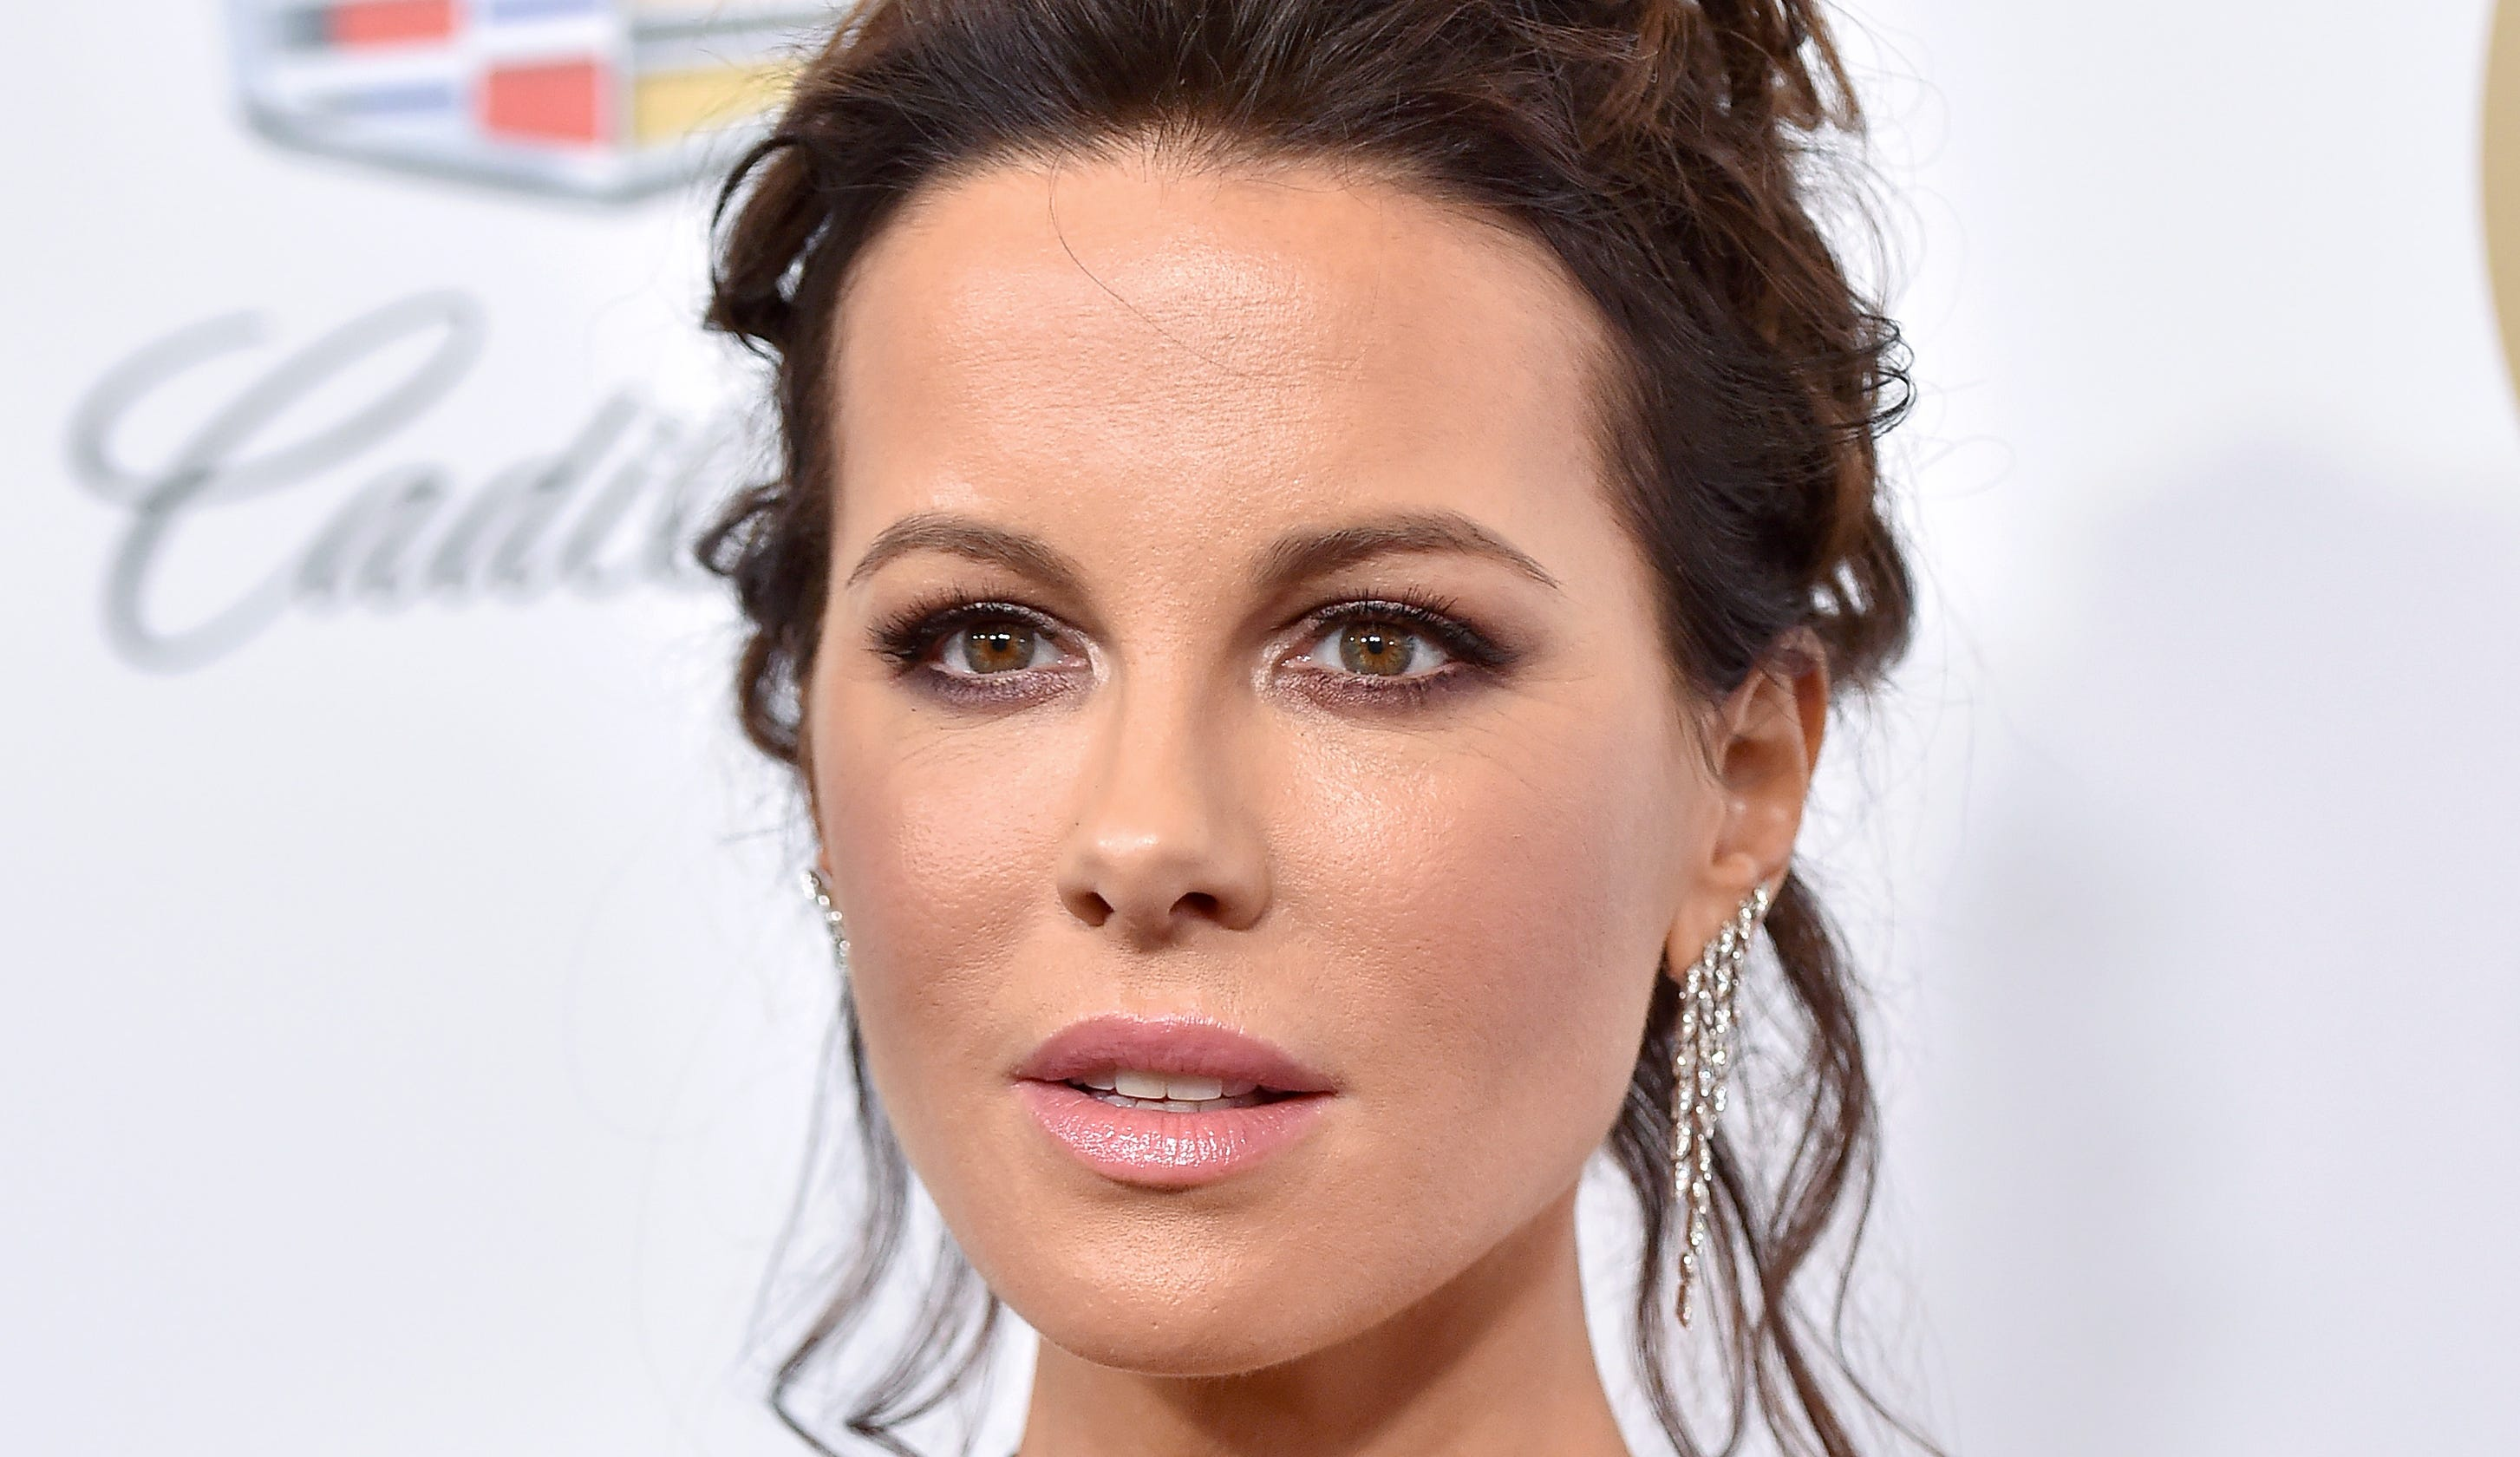 The Kate Beckinsale collection